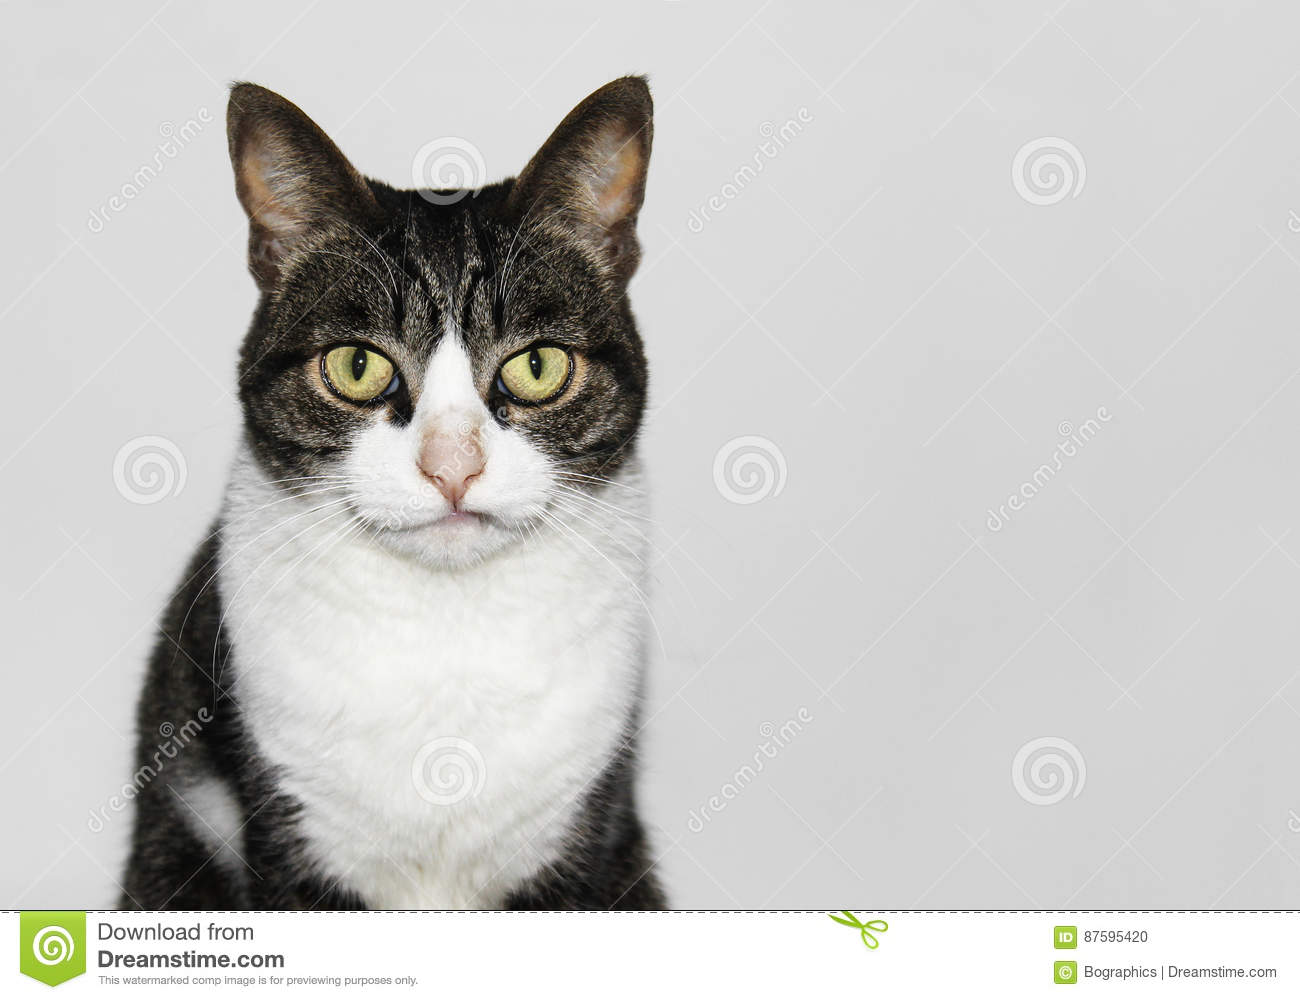 Cute but sober cat portrait isolated